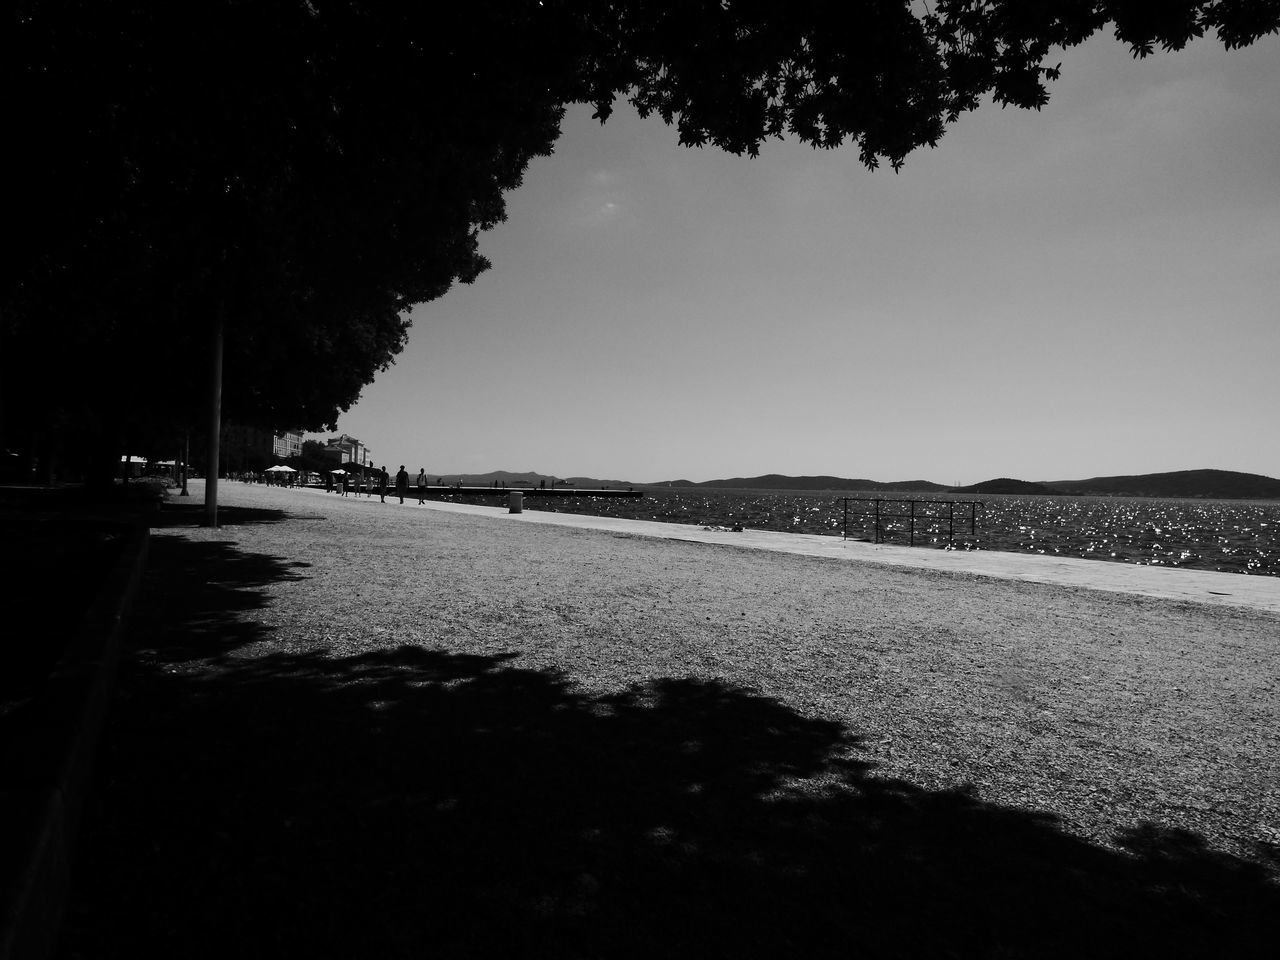 Adriatic Sea Beach Beauty In Nature Blackandwhite Blackandwhite Photography Clear Sky Coast Contrast Dalmatia Day Landscape Light And Shadow Nature No People Outdoors Sea Shadow Sky Sunset The Great Outdoors - 2017 EyeEm Awards The Way Forward Tranquil Scene Tranquility Tree Water